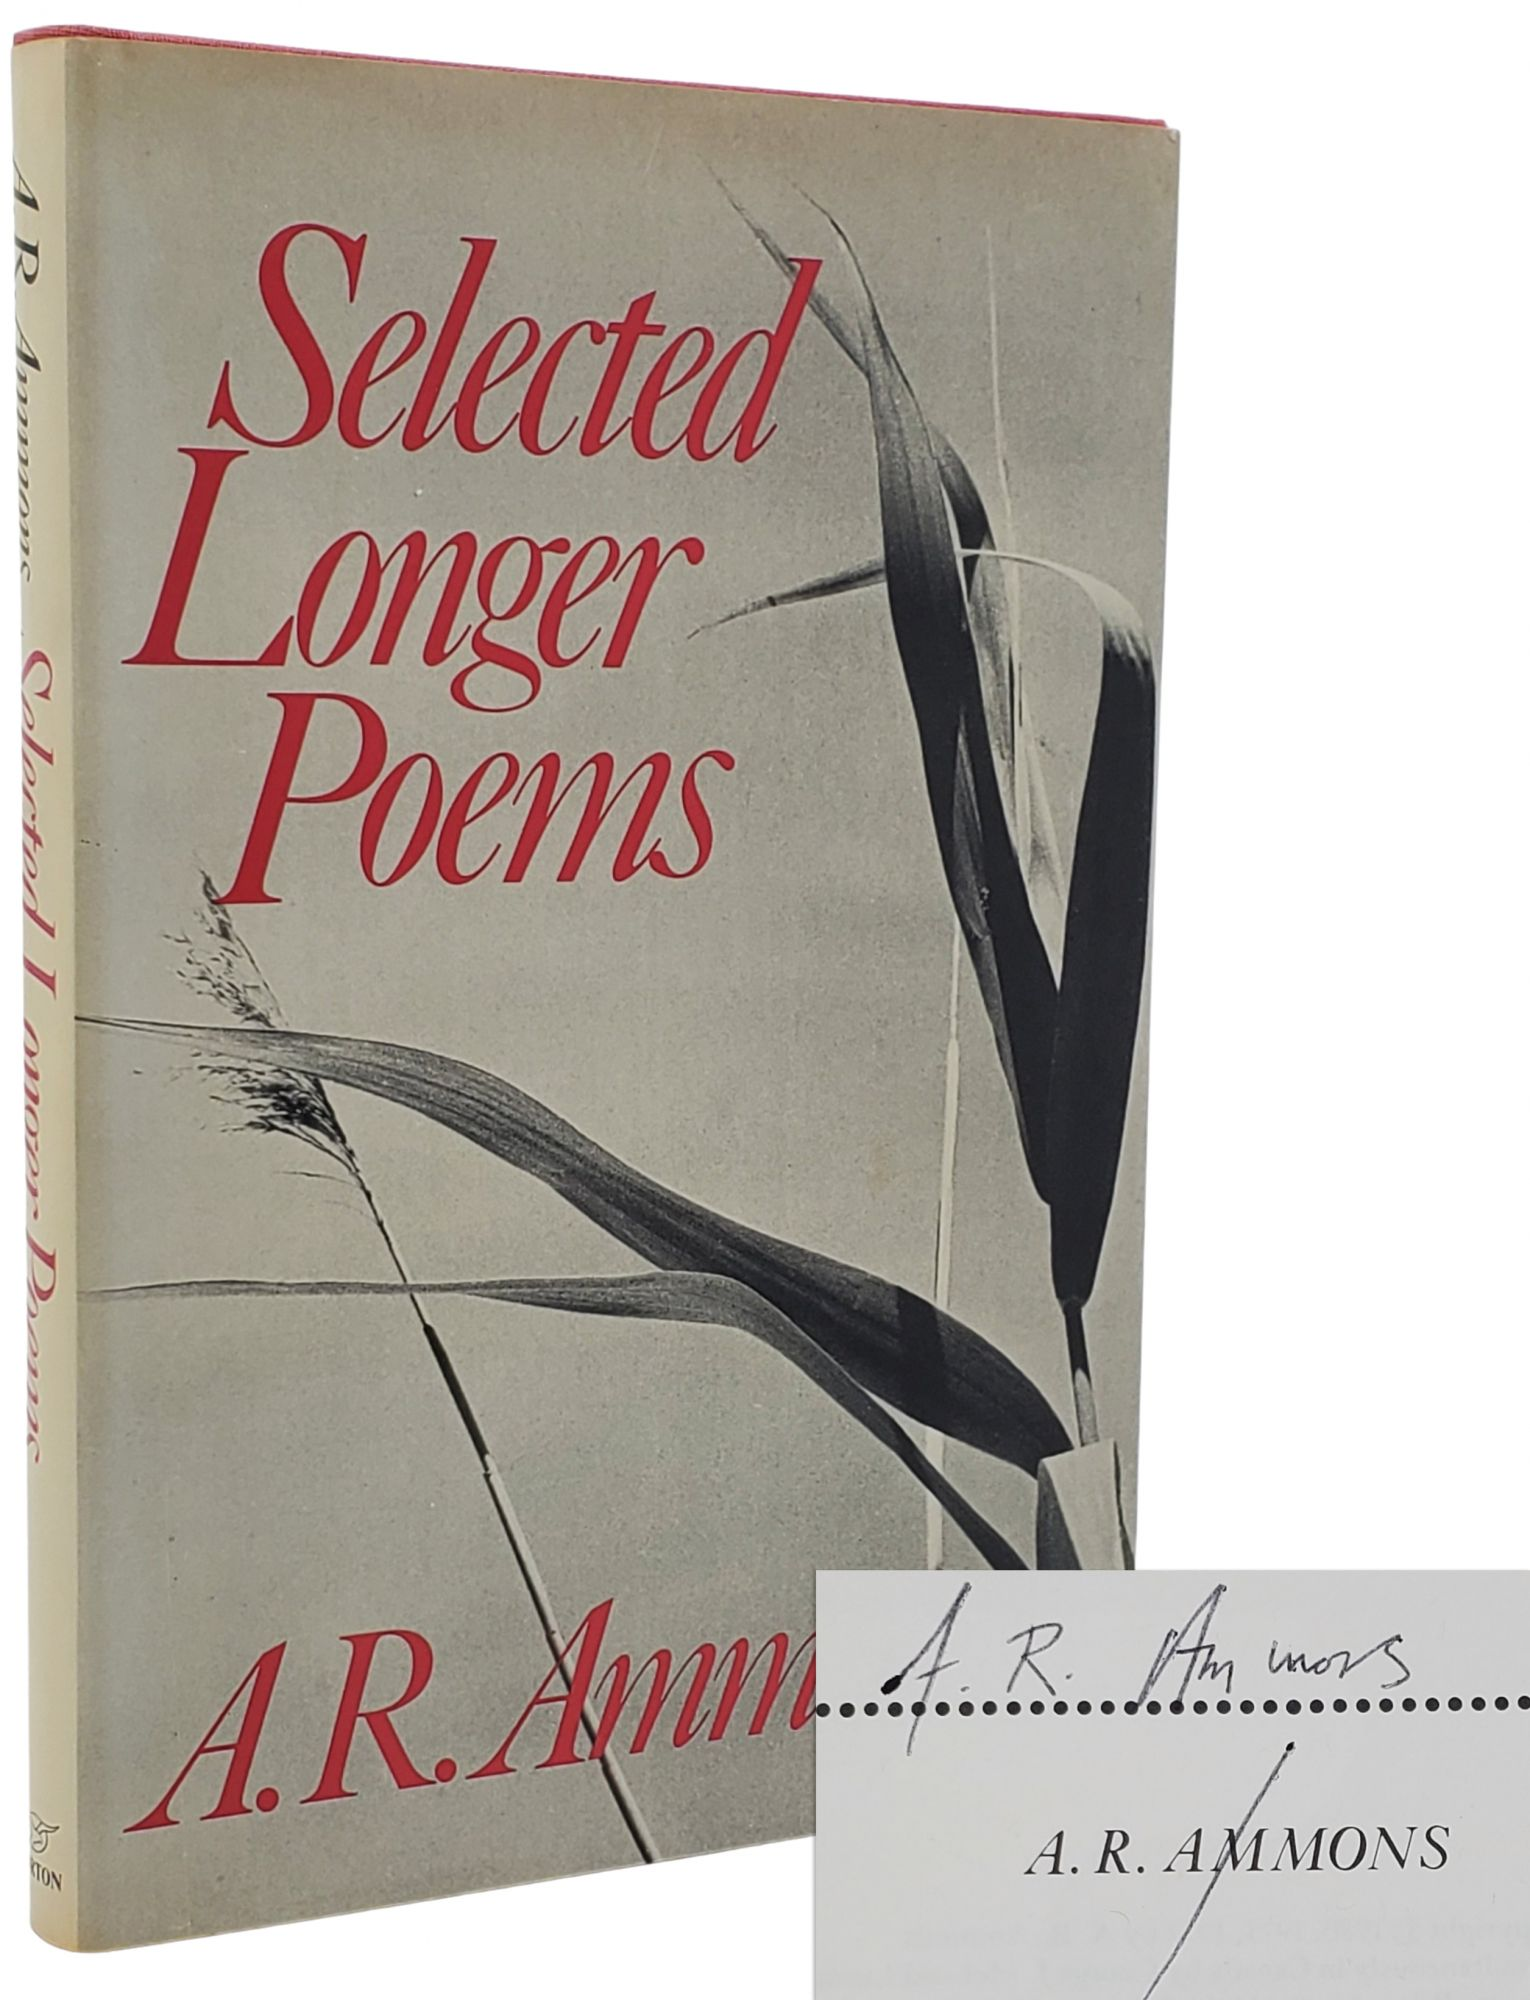 SELECTED LONGER POEMS. A. R. Ammons.